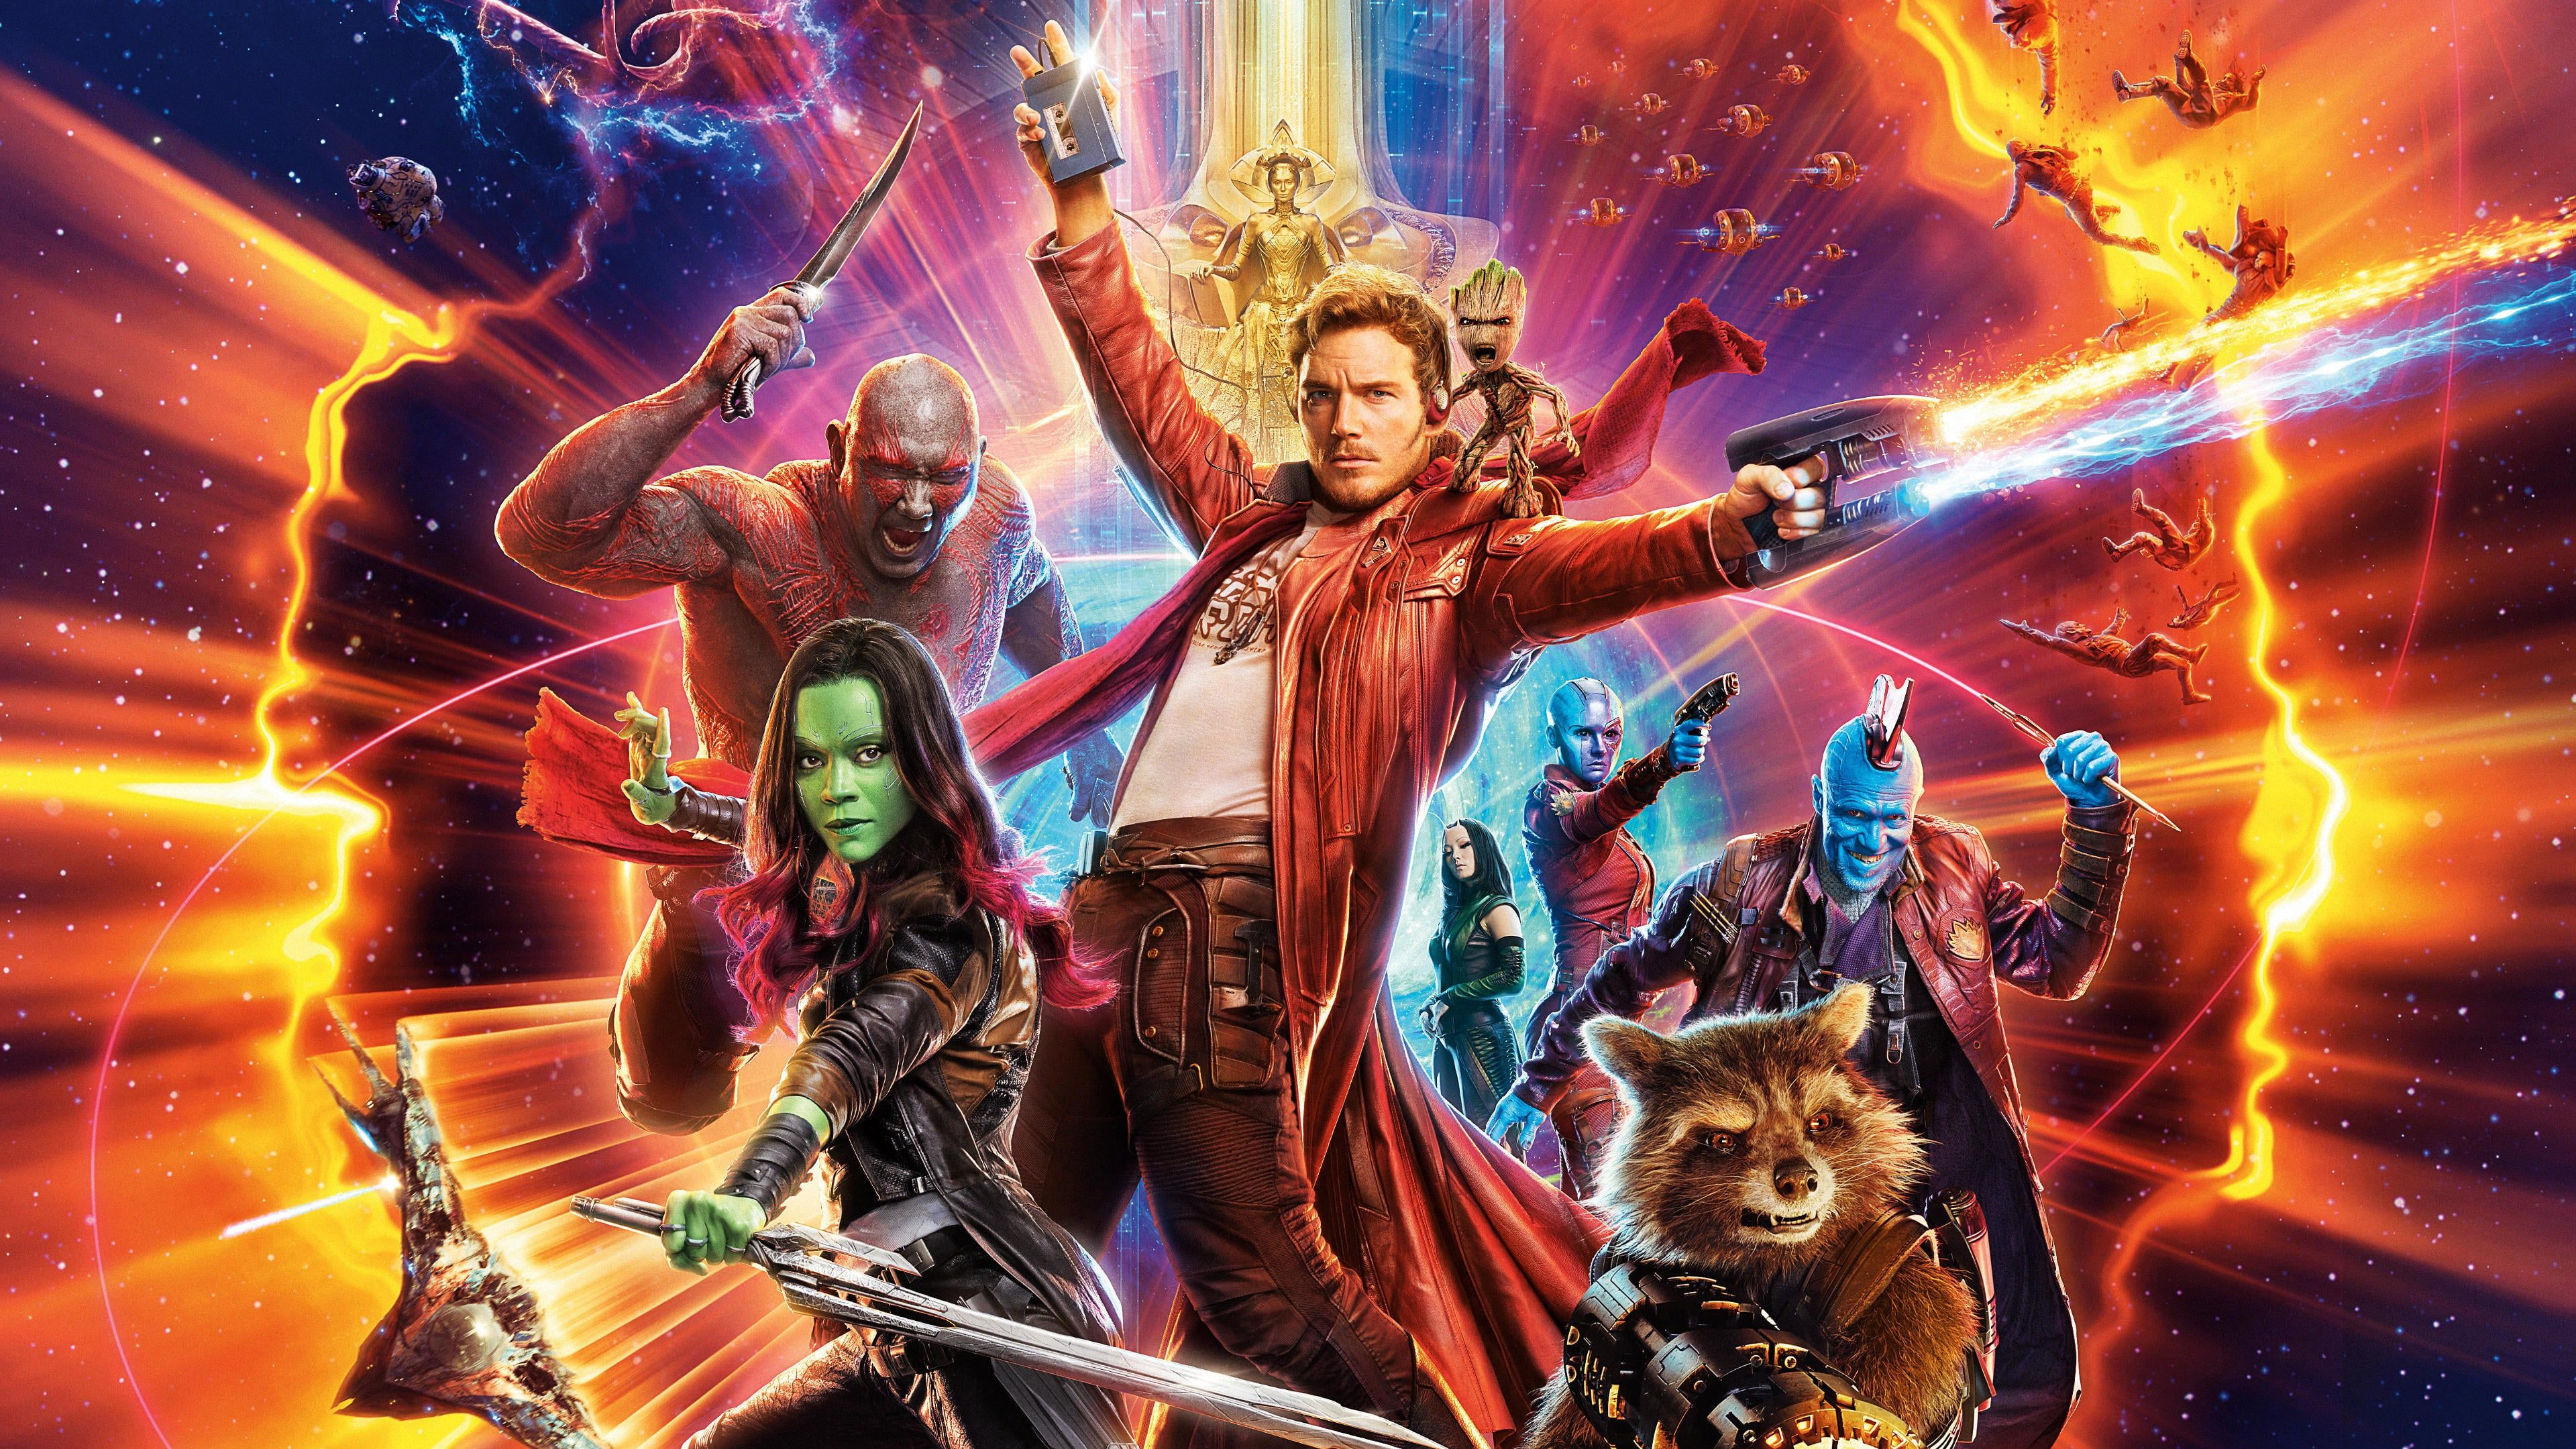 Guardians Of The Galaxy Vol 2 2017 Ganzer Film Deutsch Komplett Kino Guardians Of The Galaxy Vol 2 2017comple Guardians Of The Galaxy Marvel Cinematic Marvel